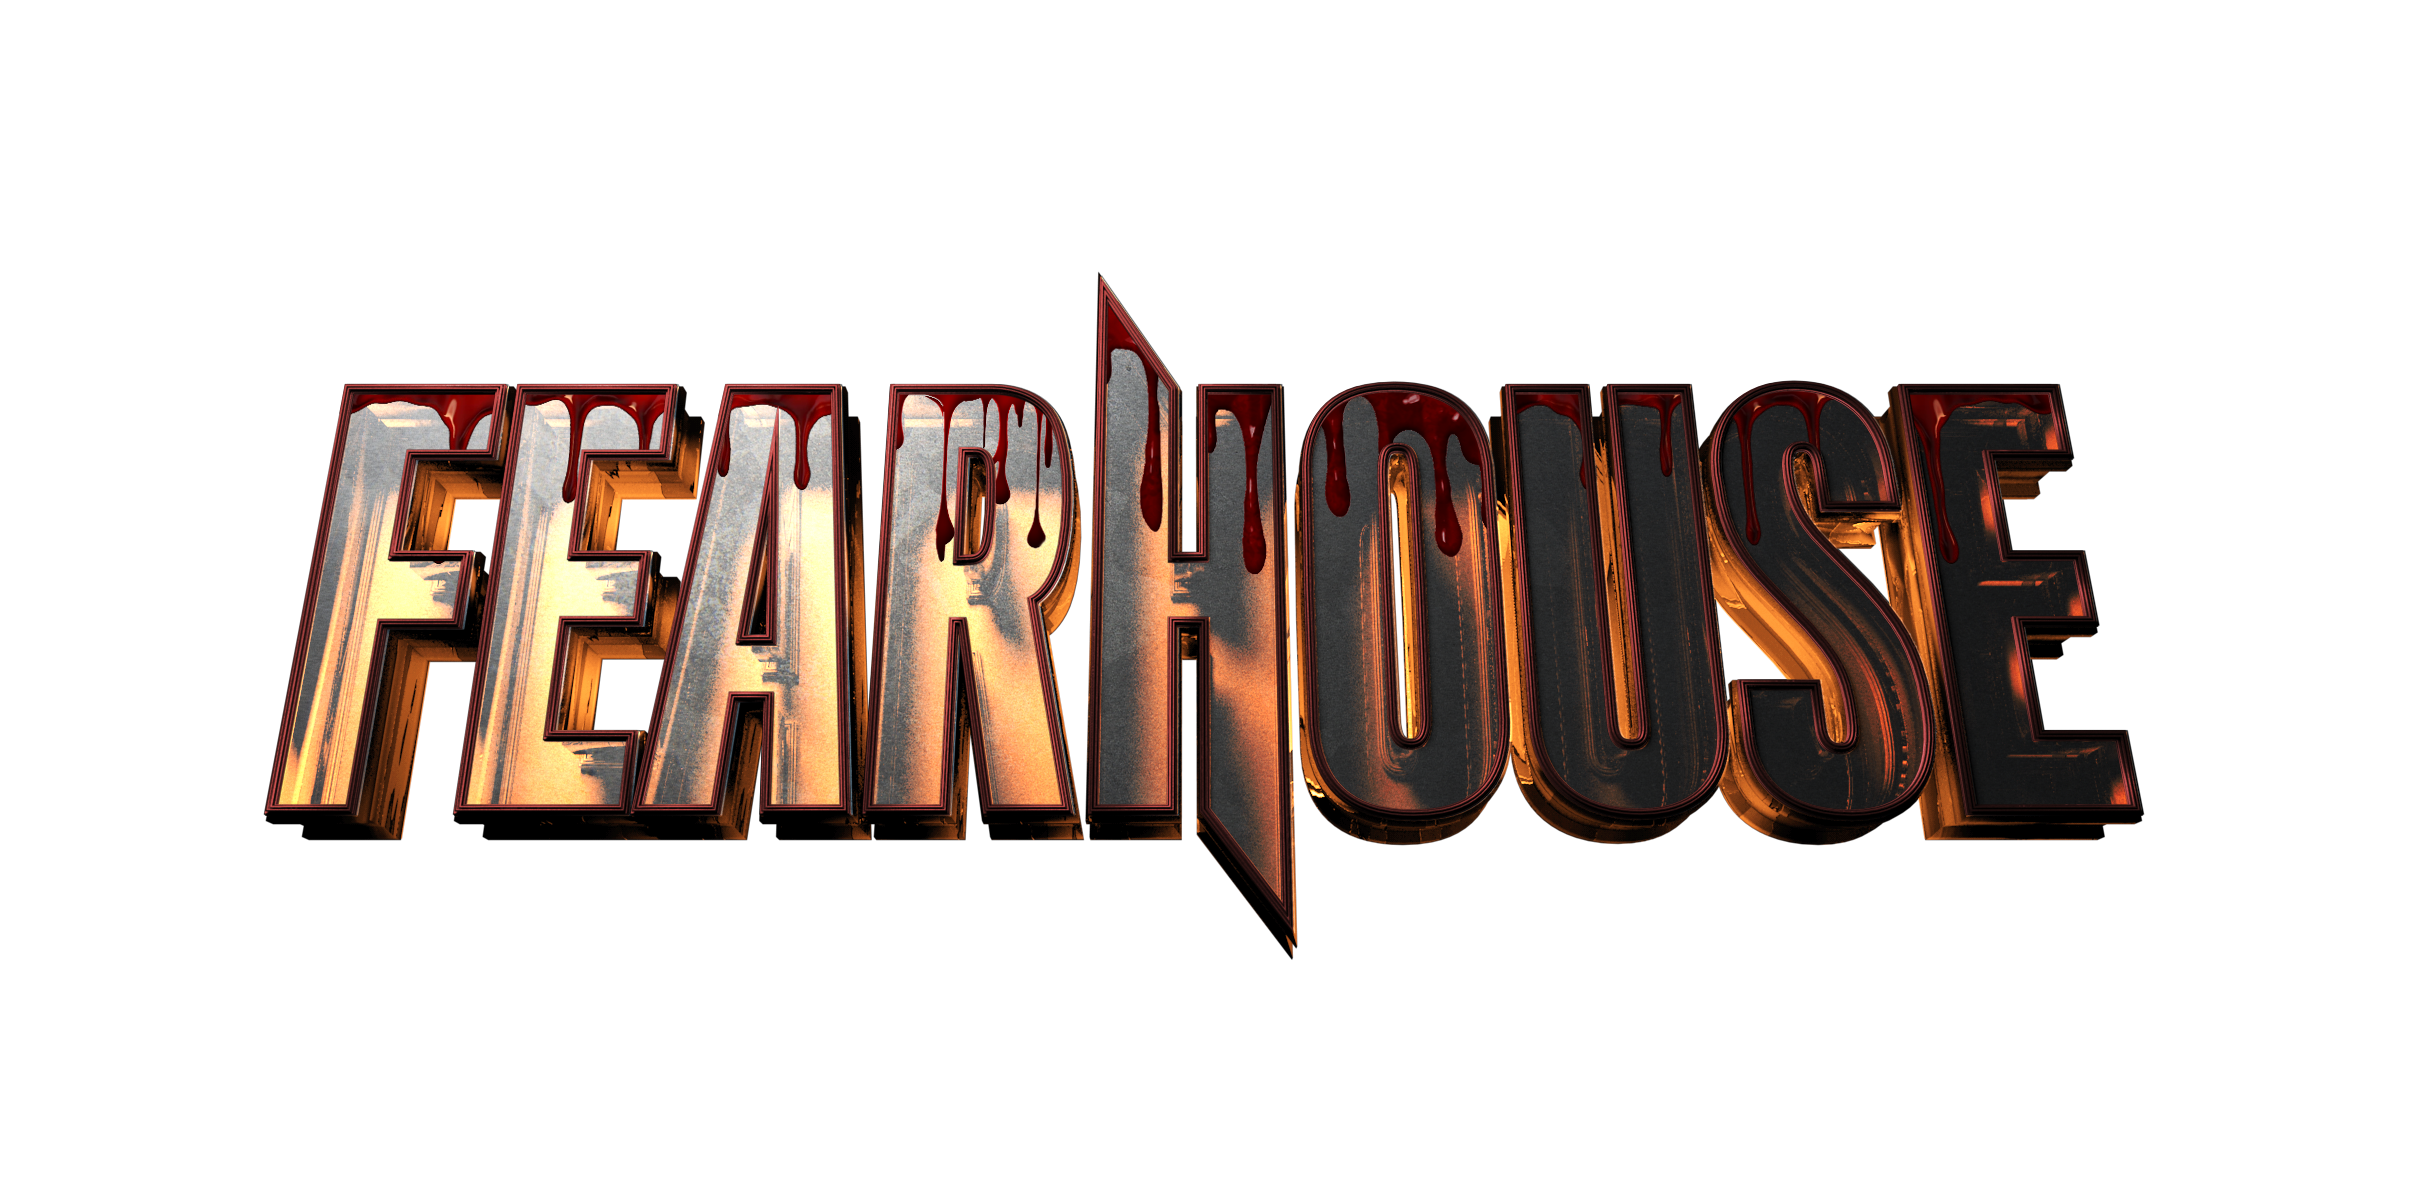 Fearhouse 2021 featuring Tiesto and The Chainsmokers